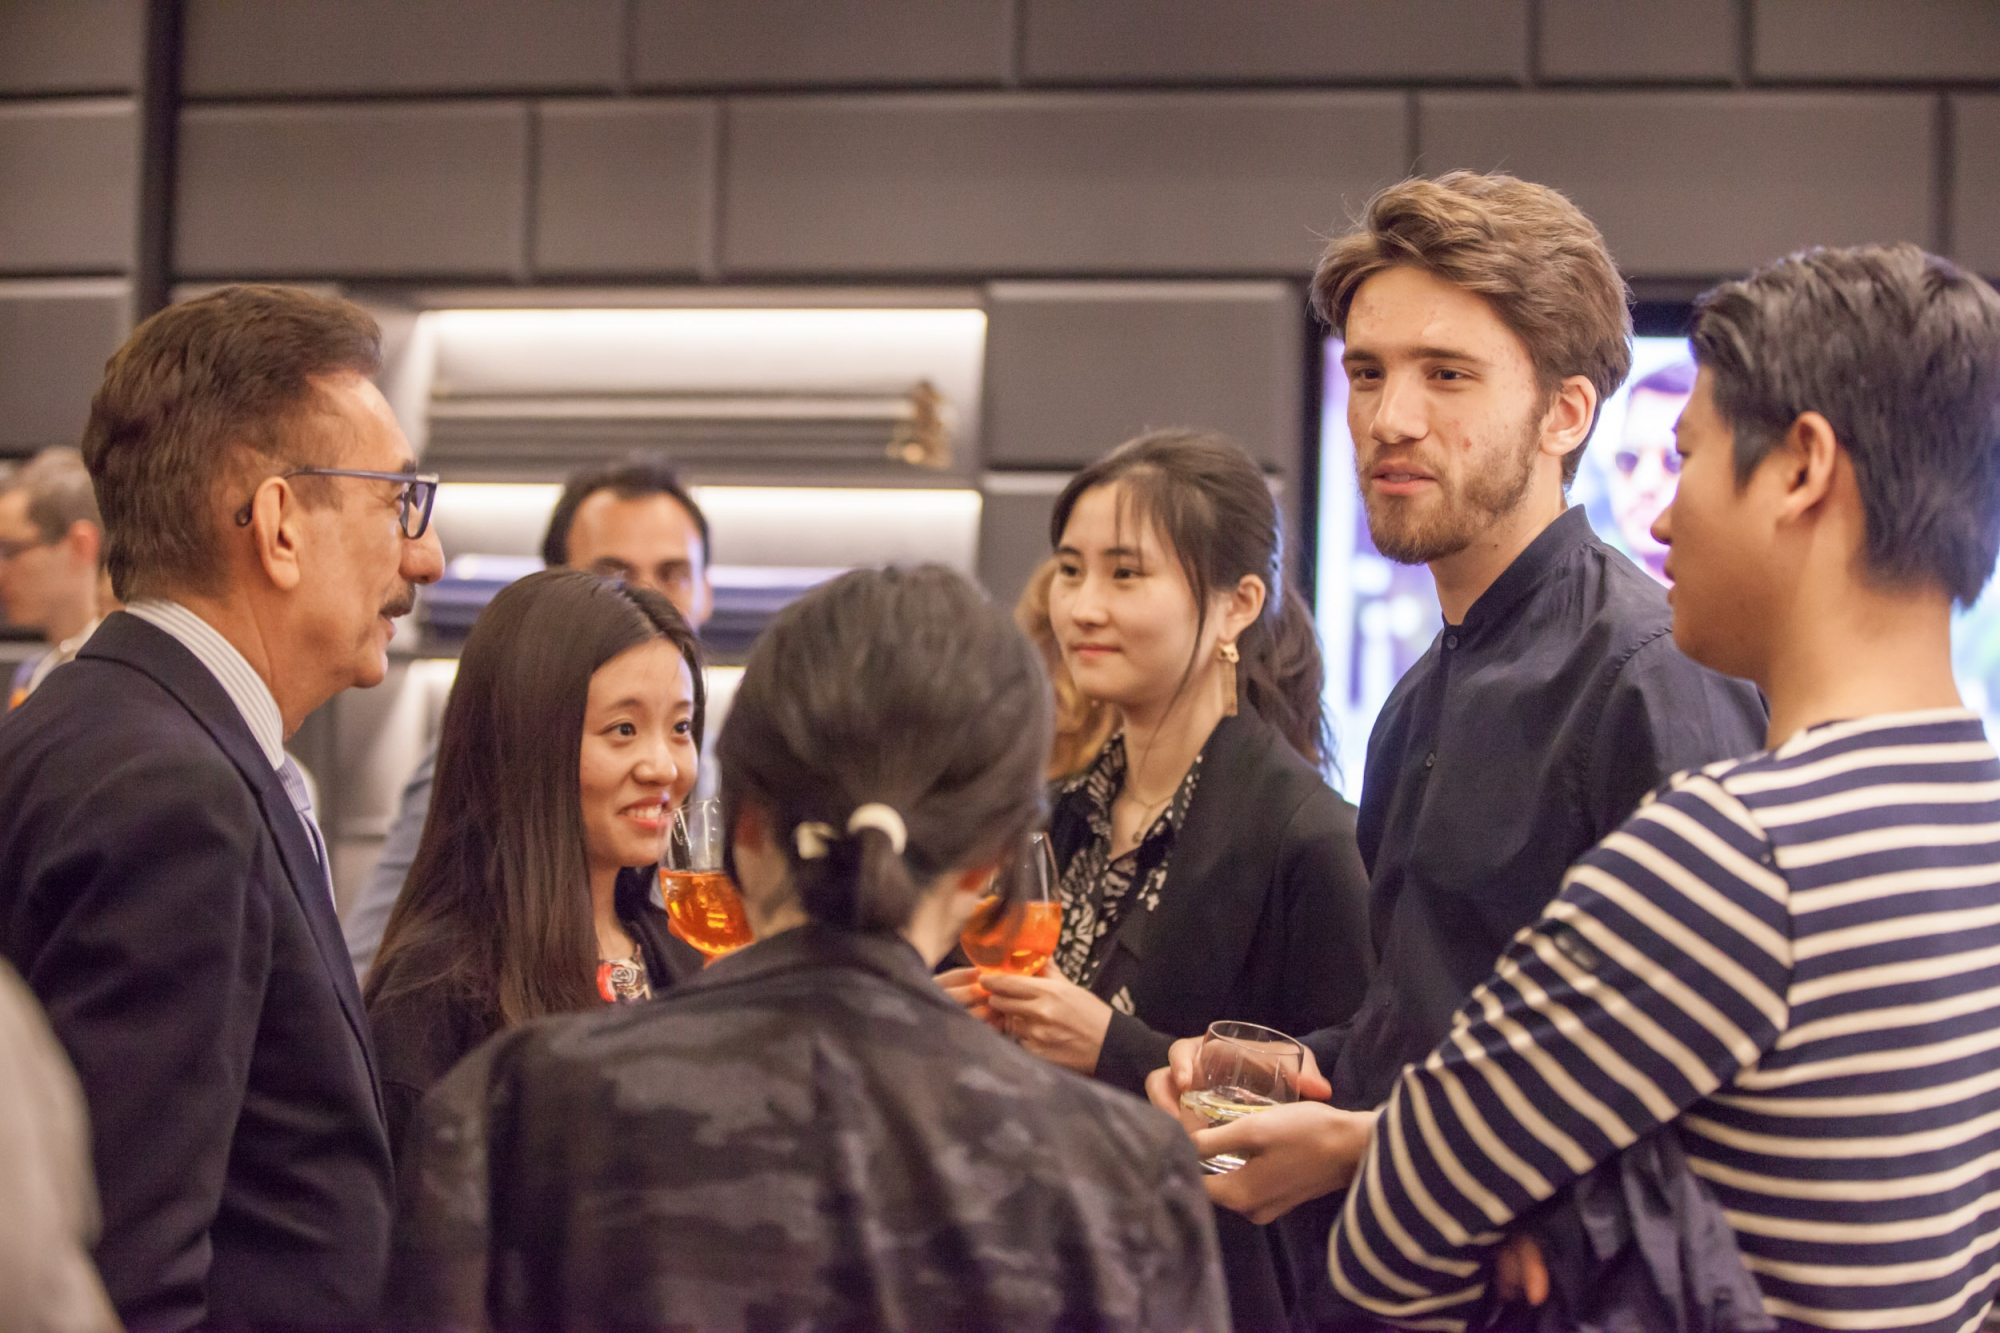 A conversation with... me A brief video from my conference at VBC Showroom in Milan